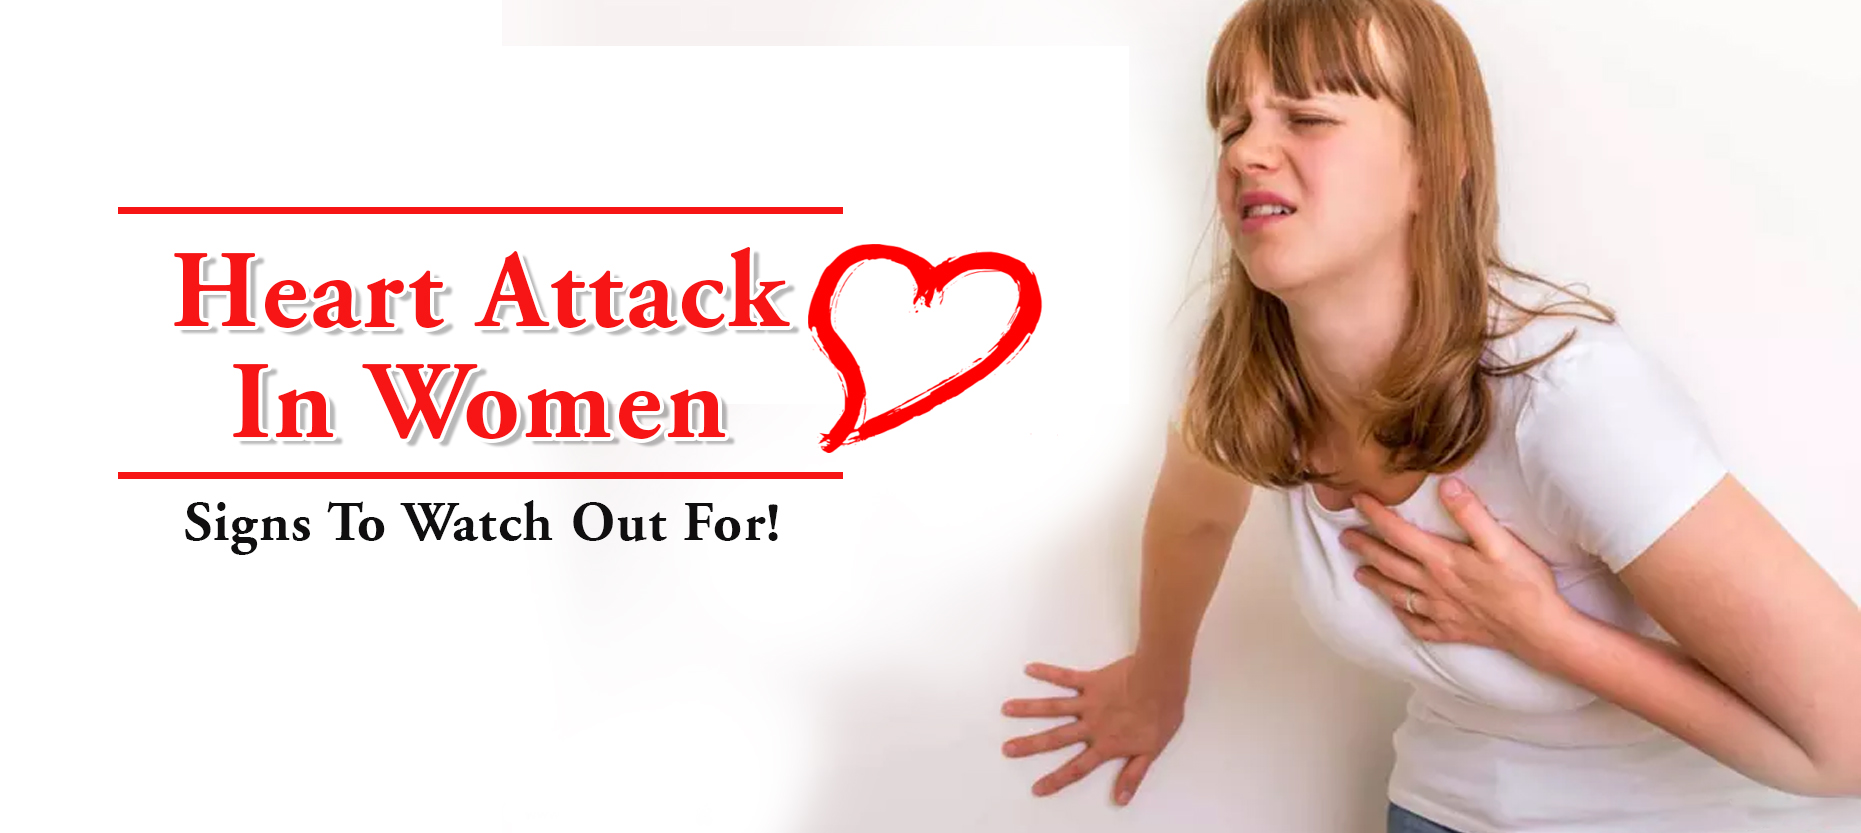 8 Silent Signs of Heart Attack in Women: Every Second Counts